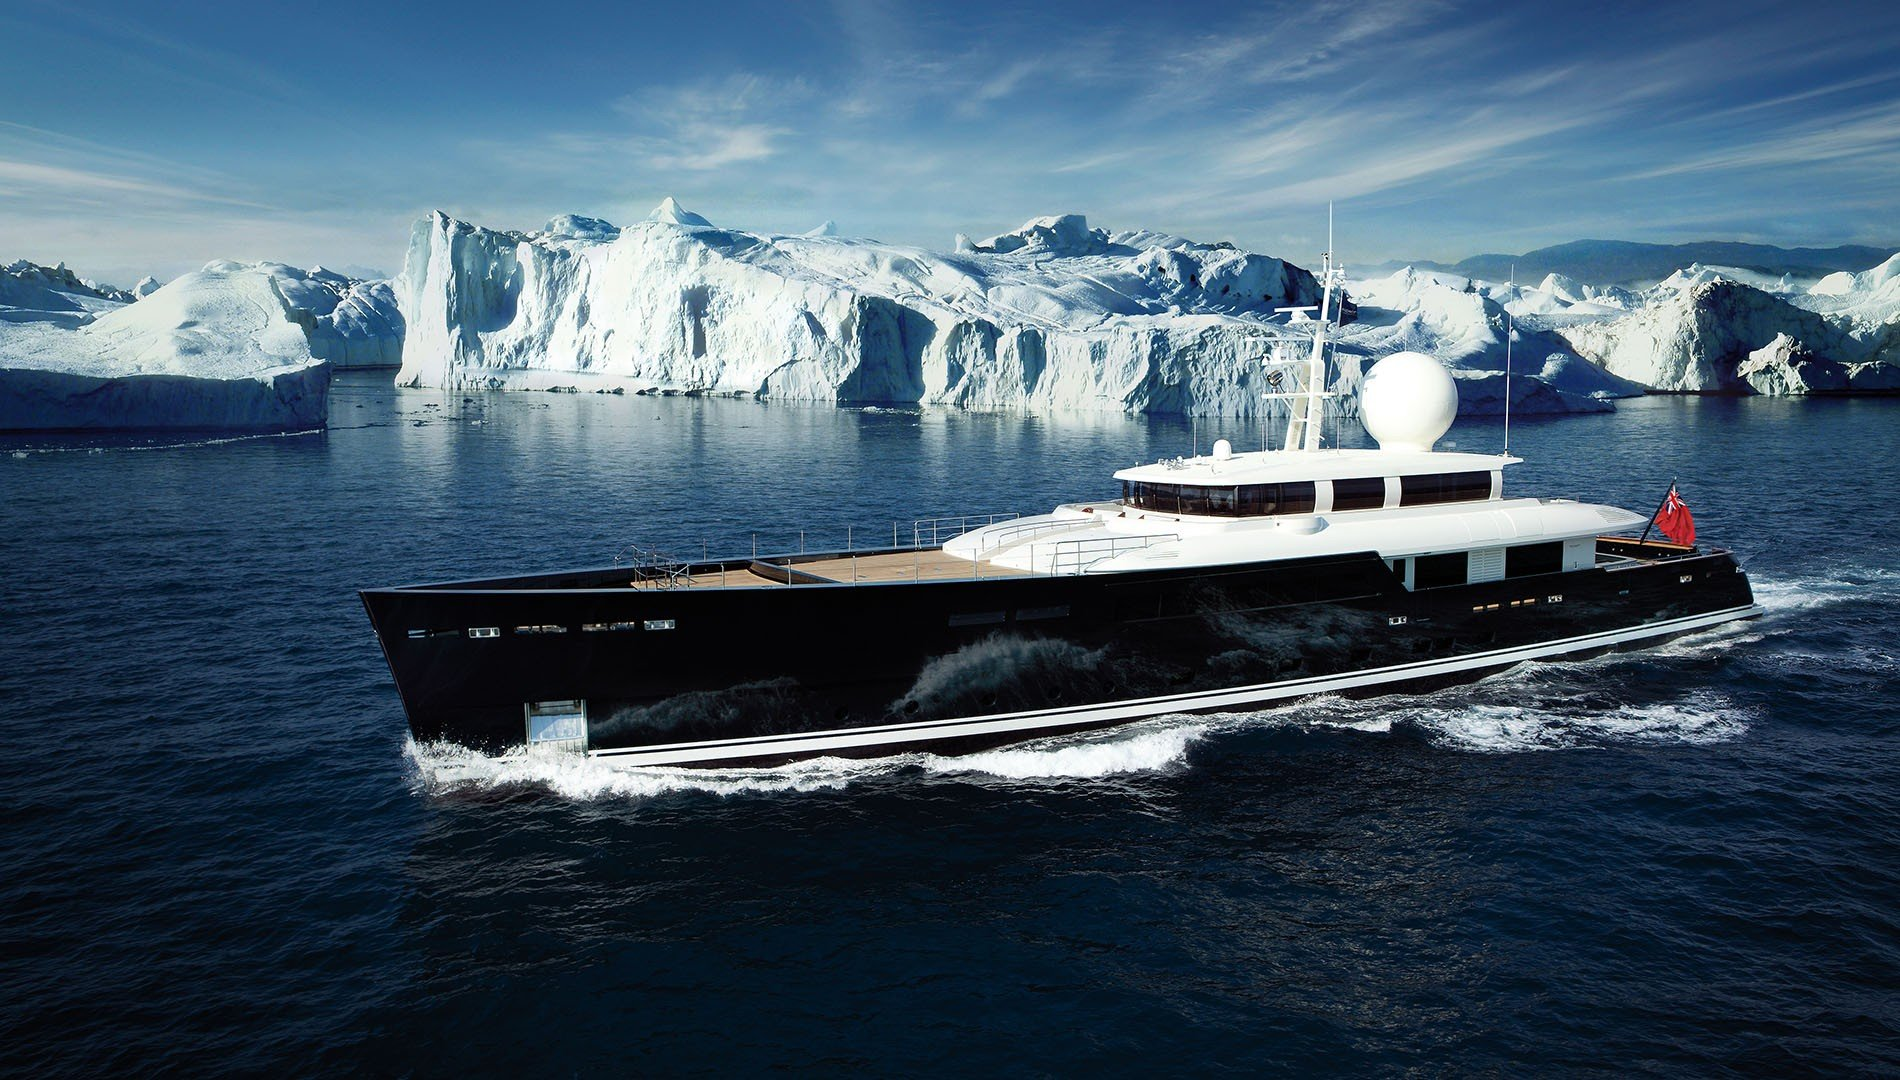 Yacht Picchiotti 183 - photo 1 of 15